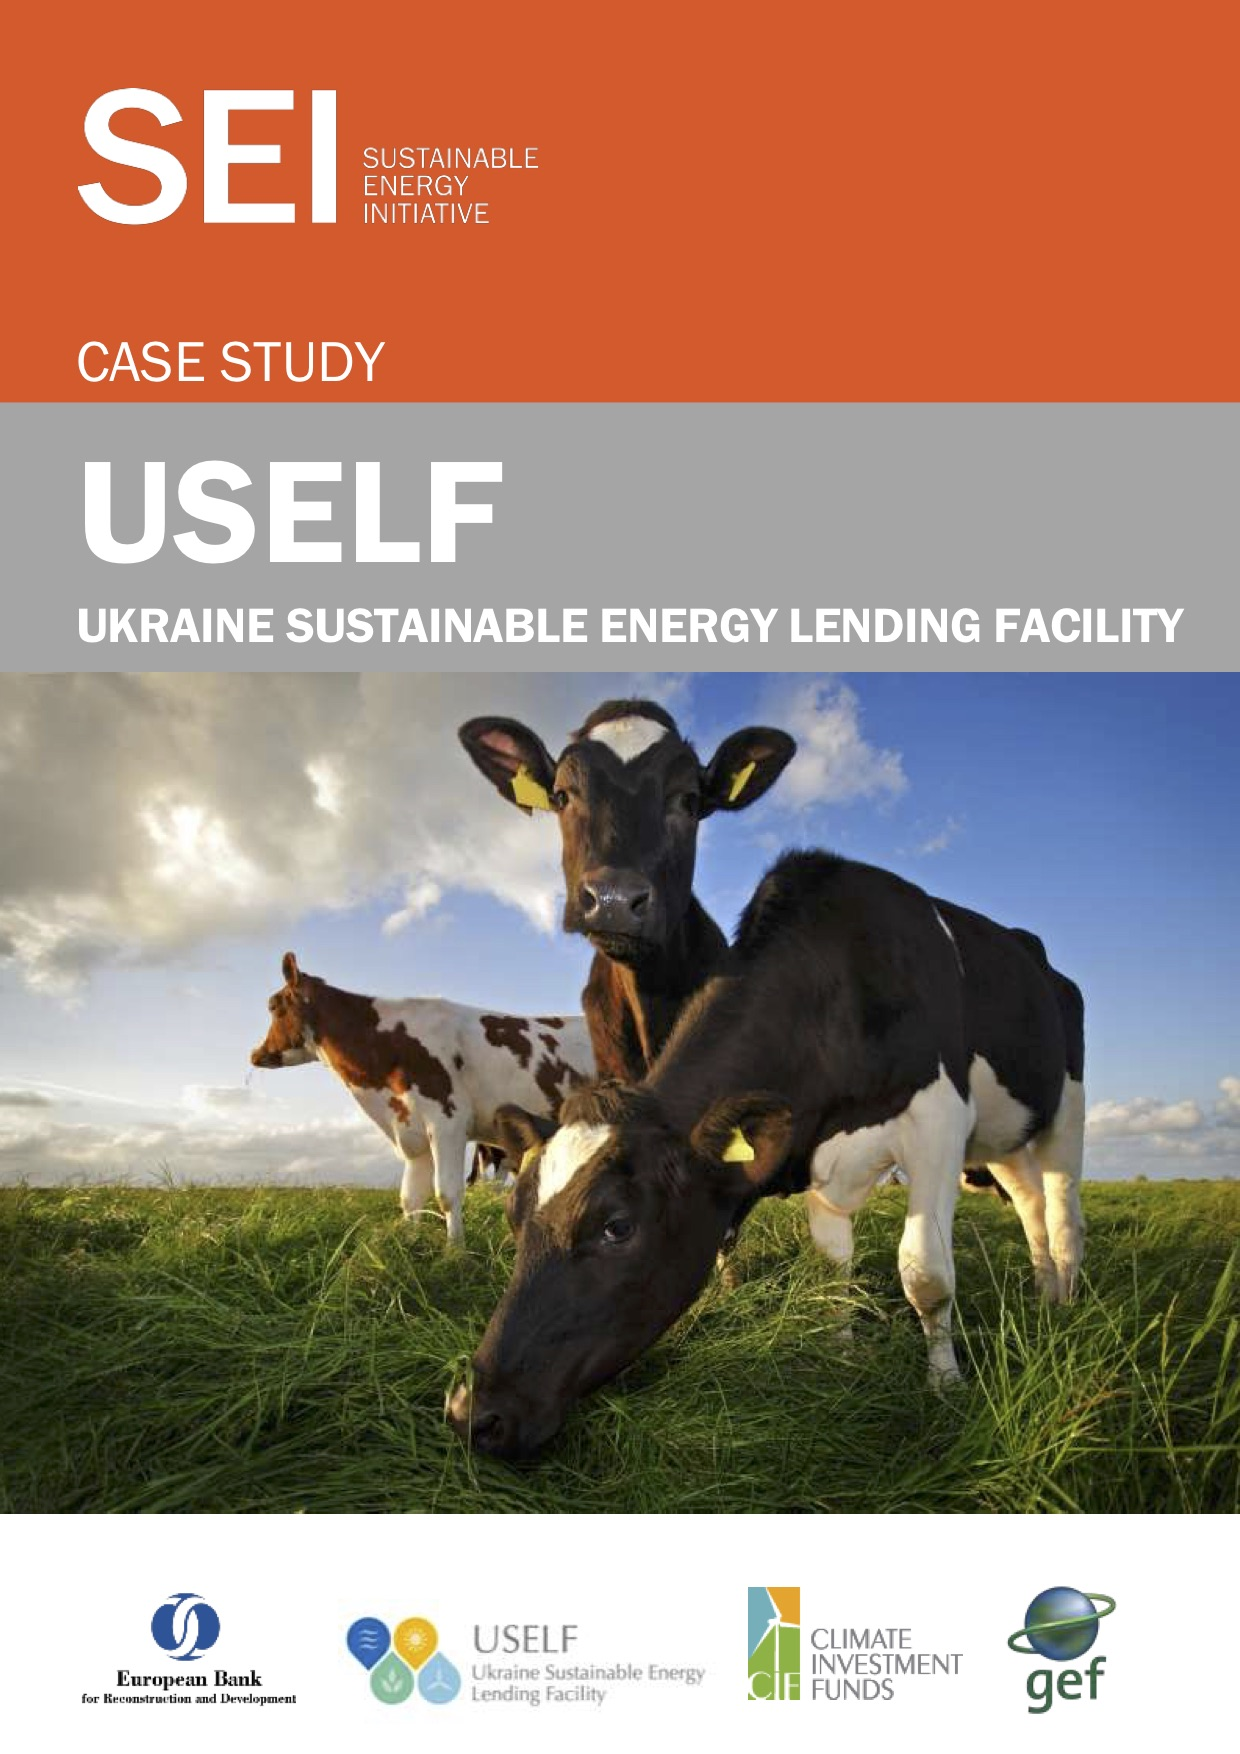 Case Study: Ukraine Sustainable Energy Lending Facility